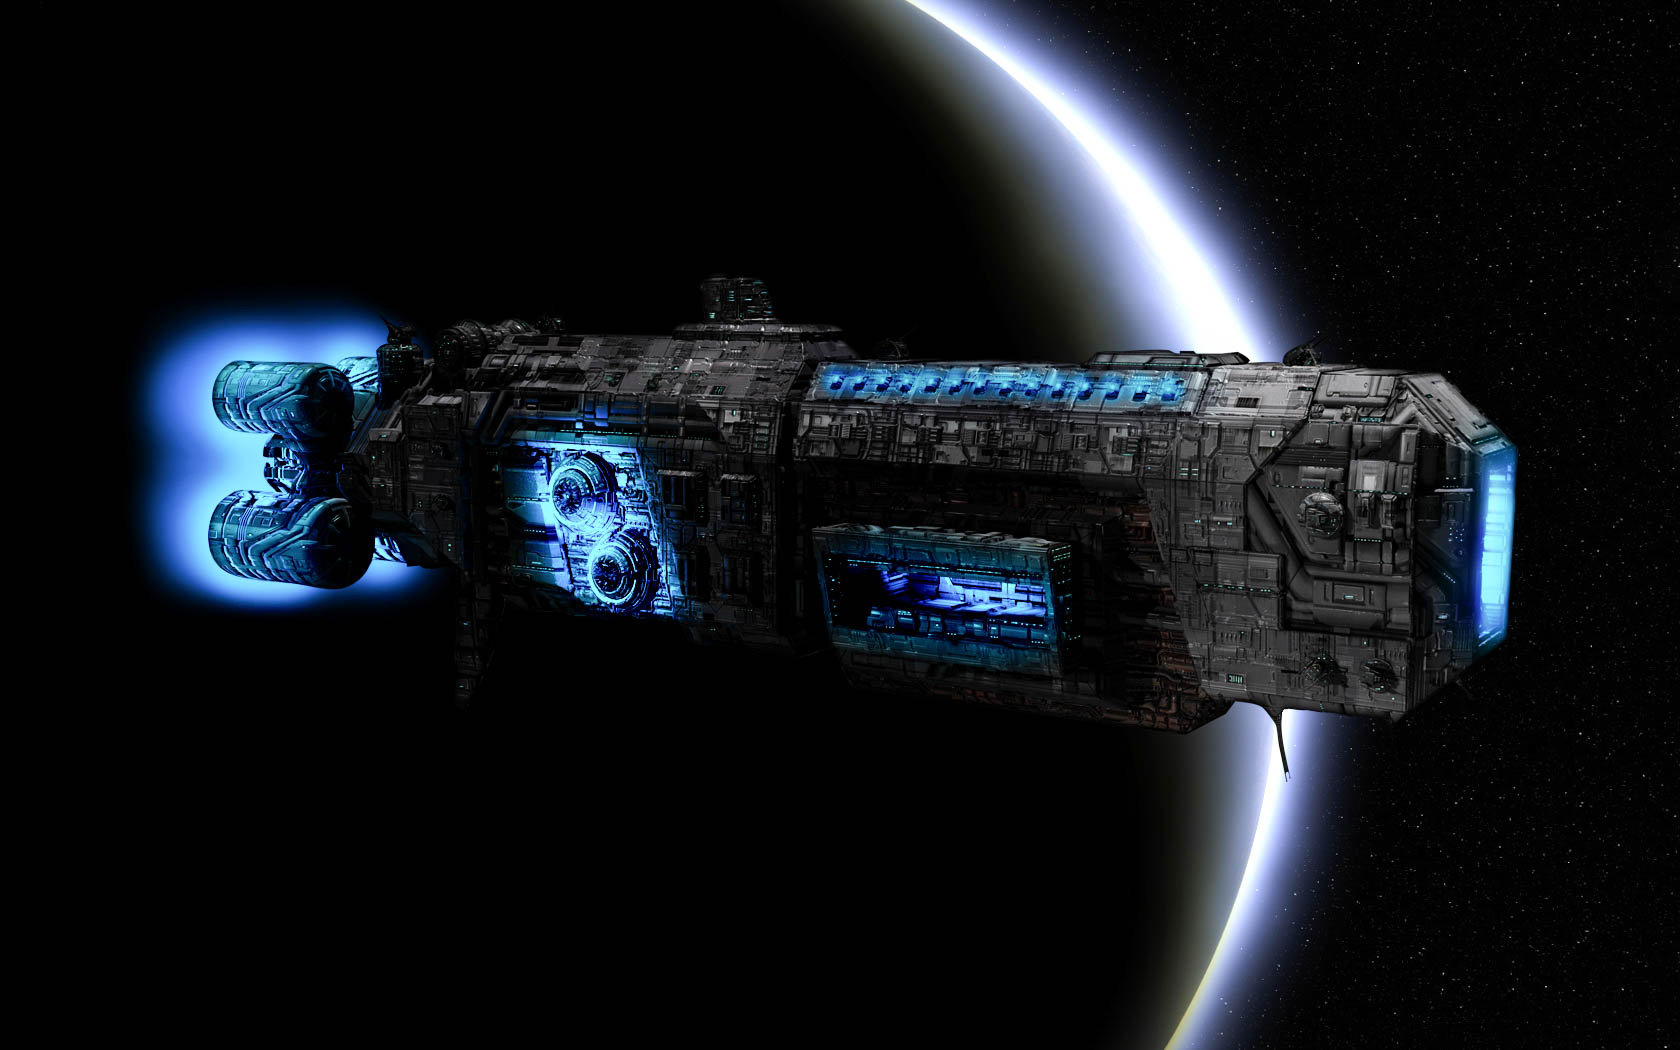 Spaceship Amazing HD Pictures, Imges And HD Wallpapers